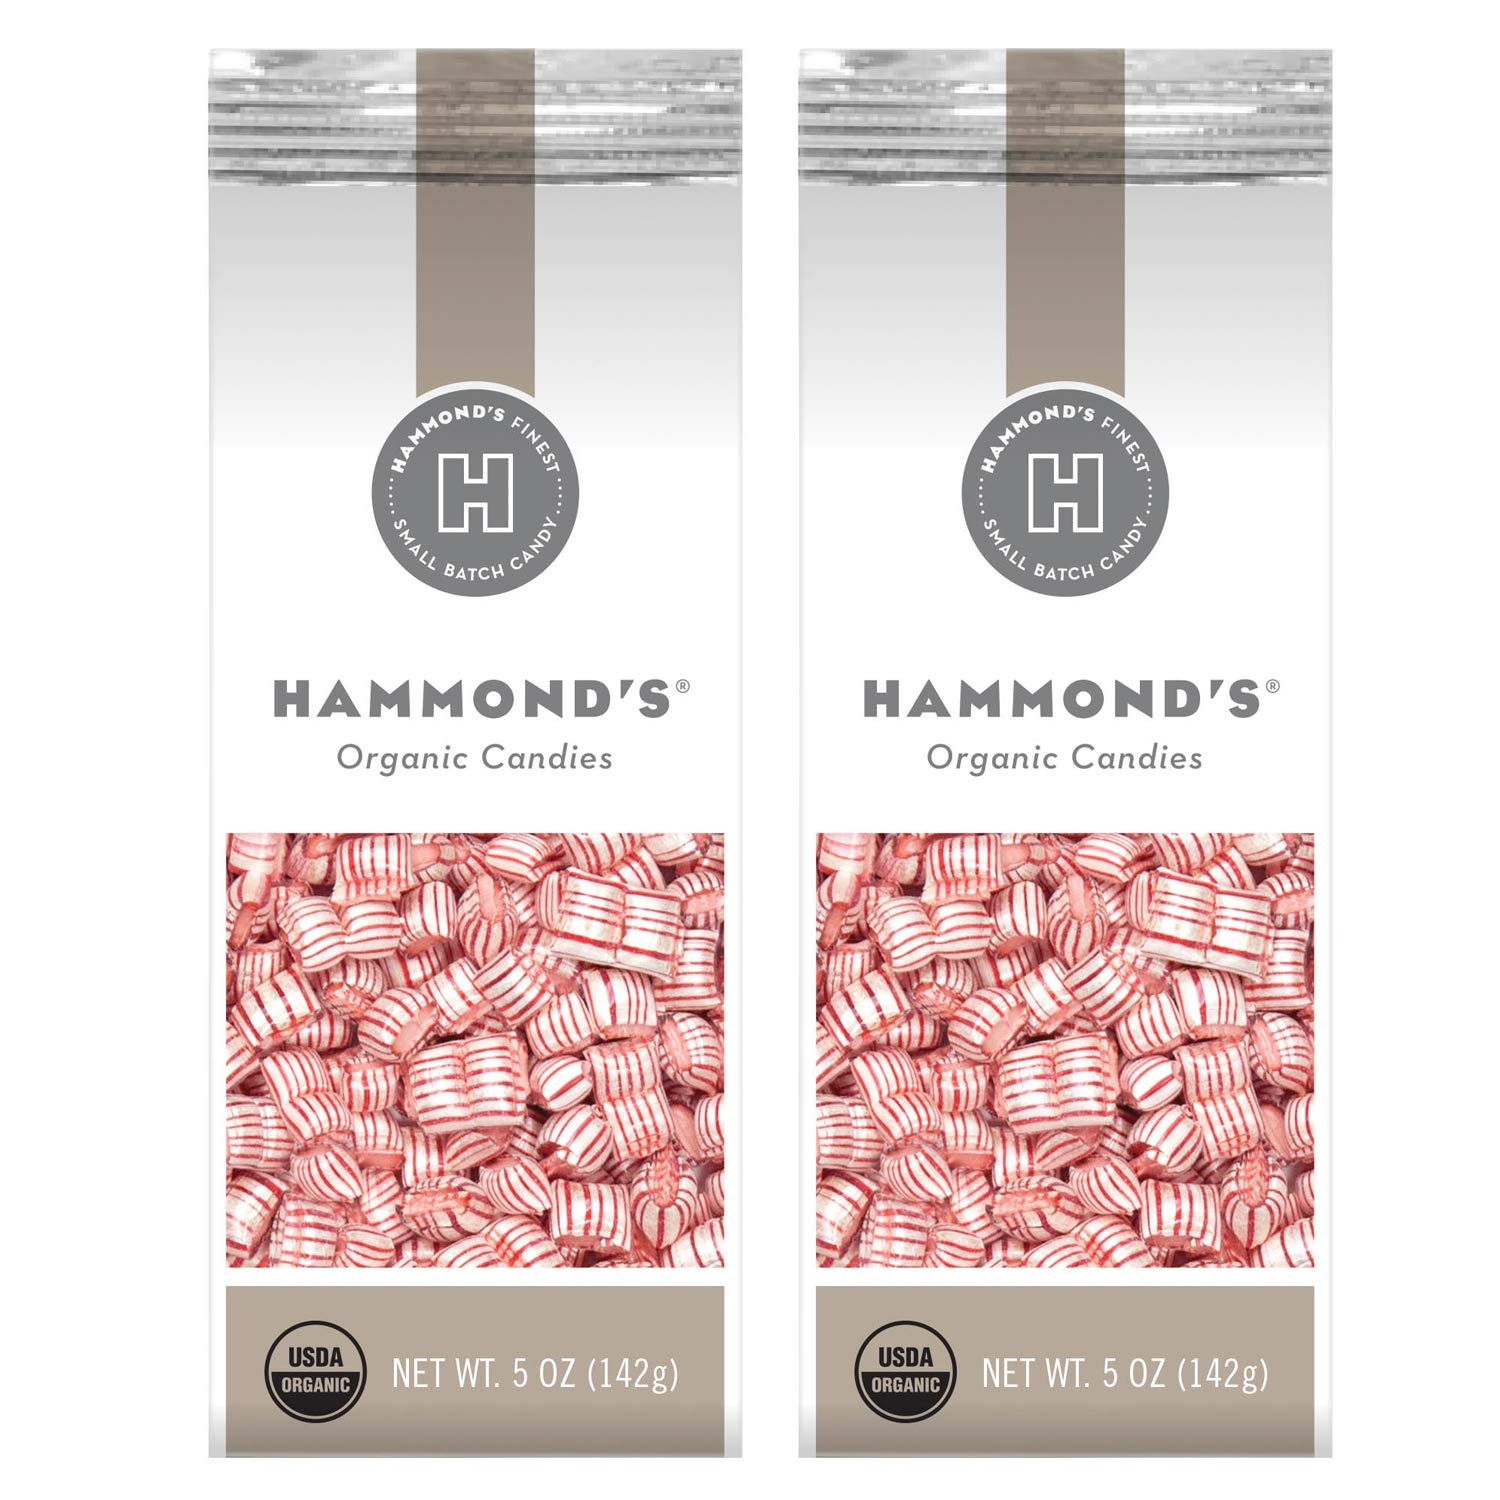 Hammond's Organic Mint Pillows 2- 5 Ounce Bags. Hammond's Peppermint Hard Candy is Great for Holiday Candy Trays, Stocking Stuffers, Present Toppers and Holiday Office Party Gifts. Handmade in USA.